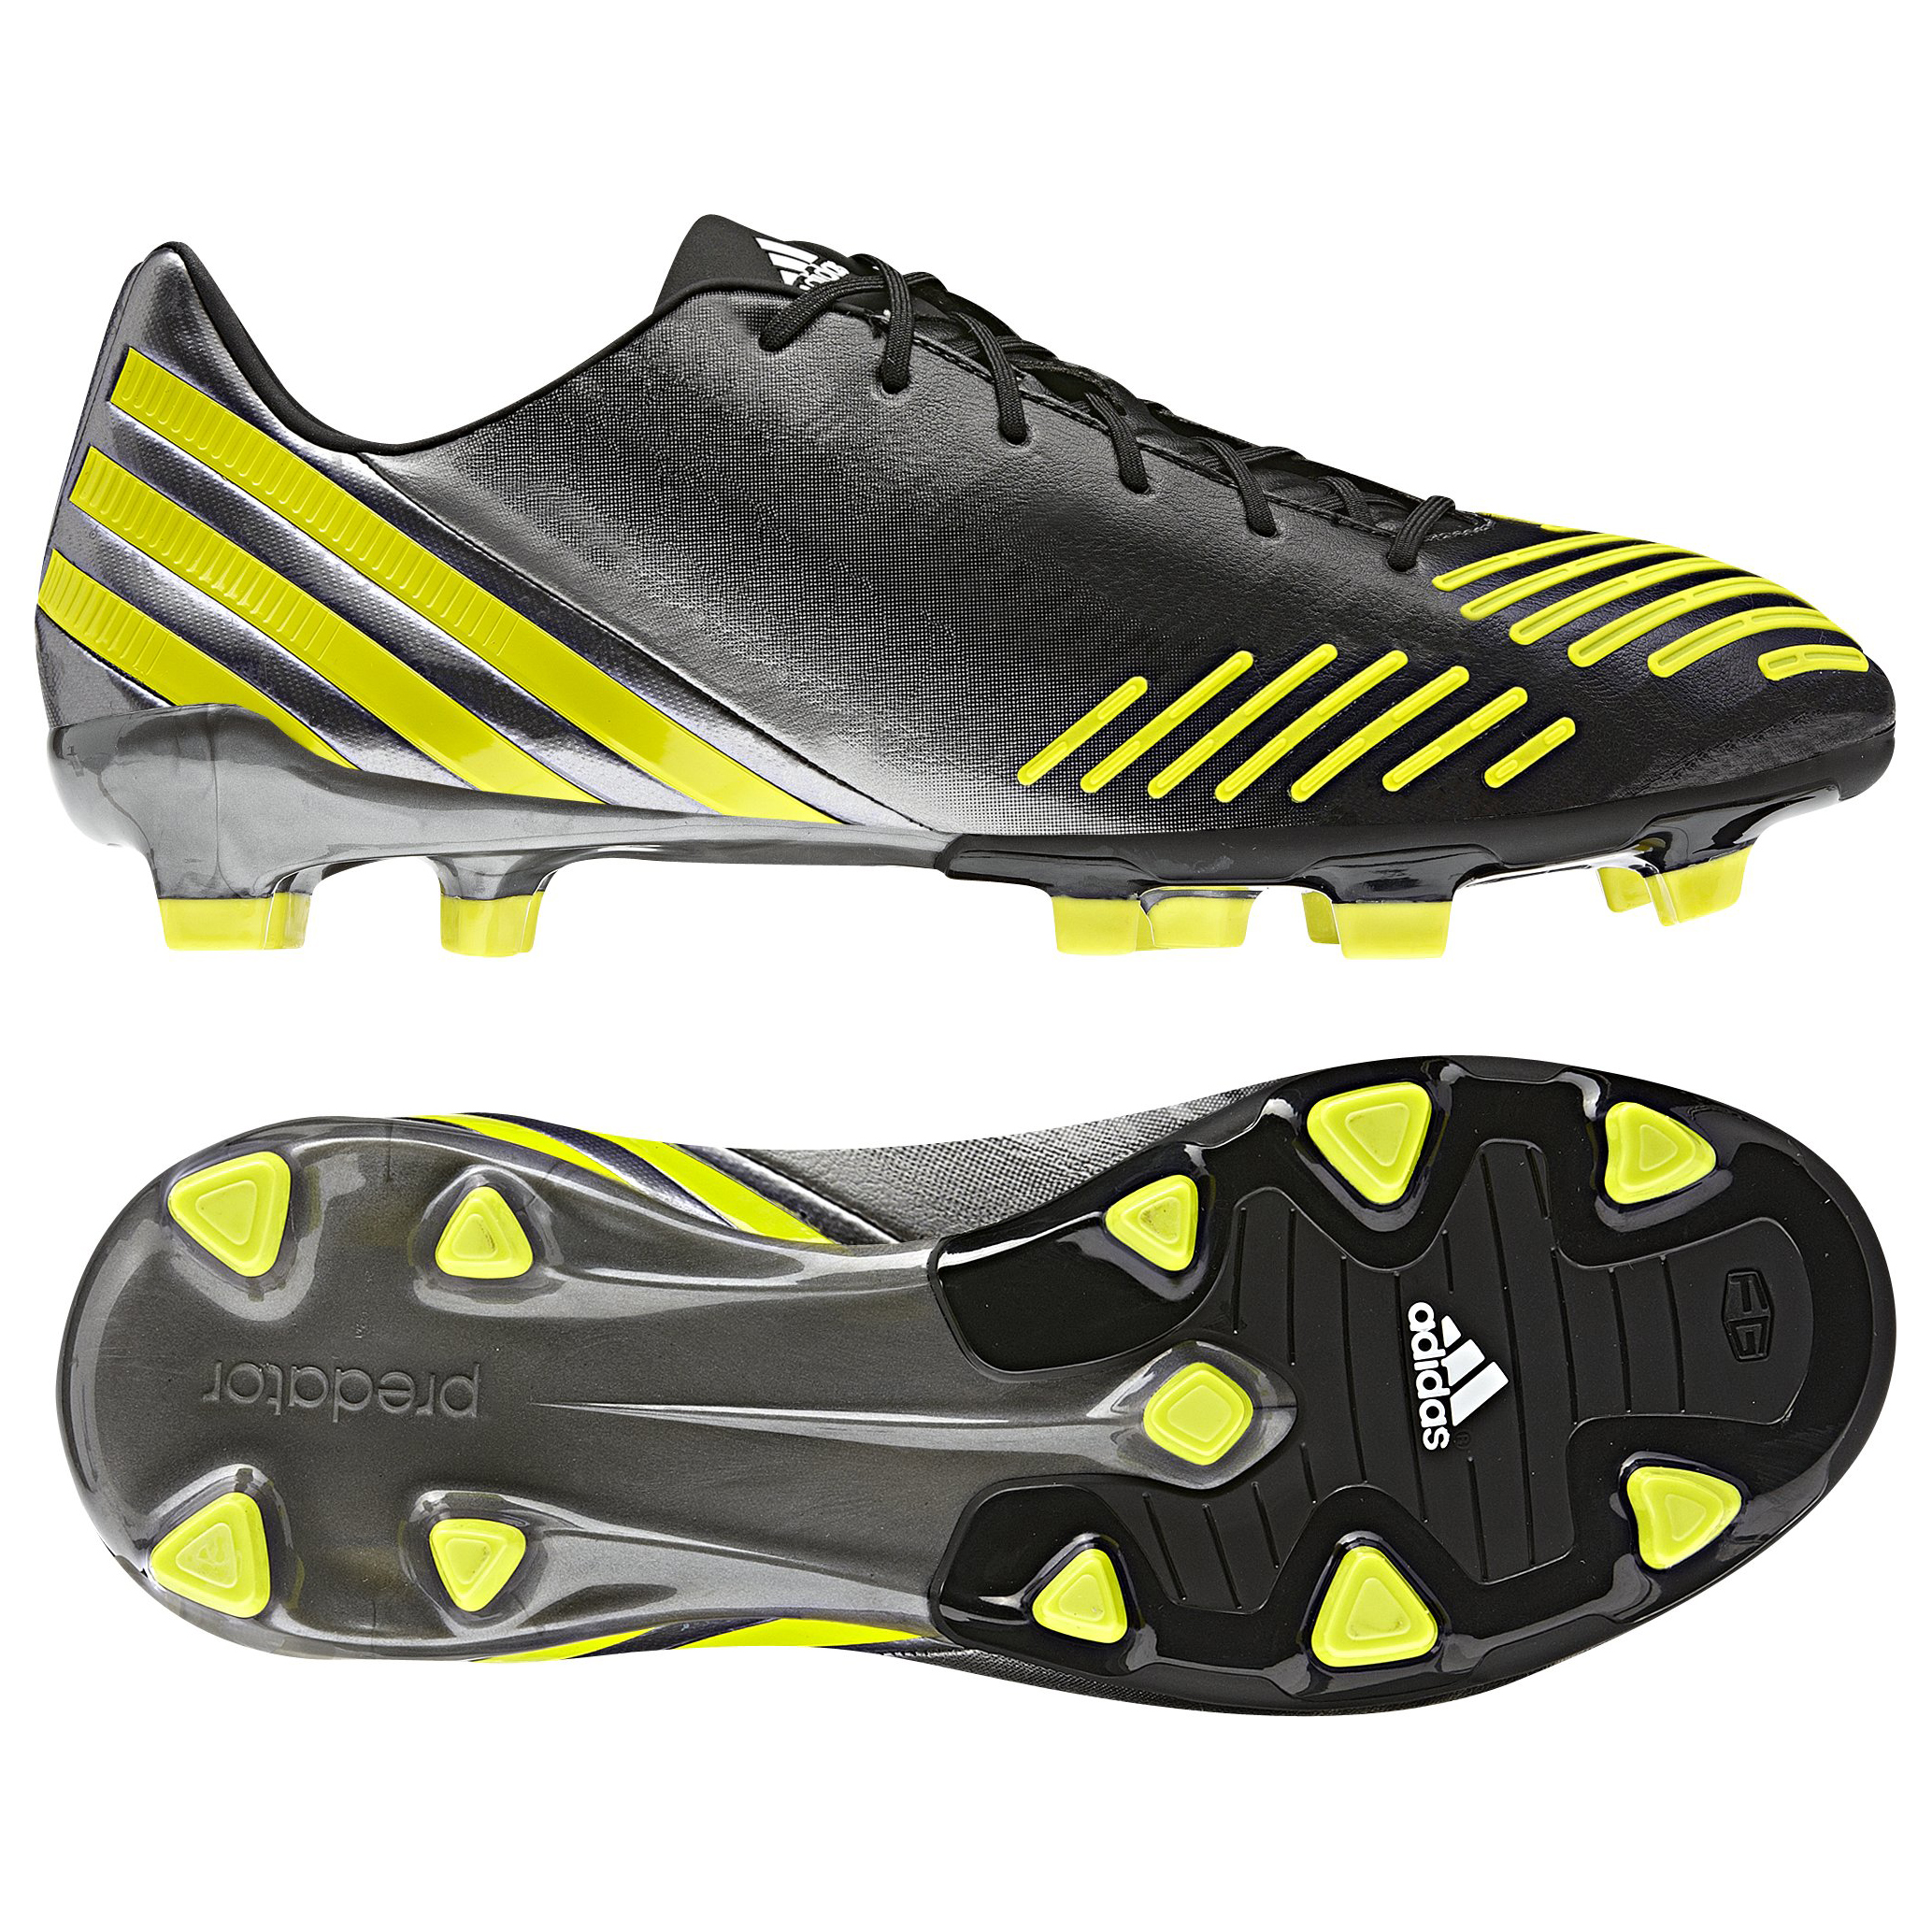 Adidas Predator Absolado LZ TRX Firm Ground Football Boots - Black/Lab Lime/Neo Iron Met - Kids